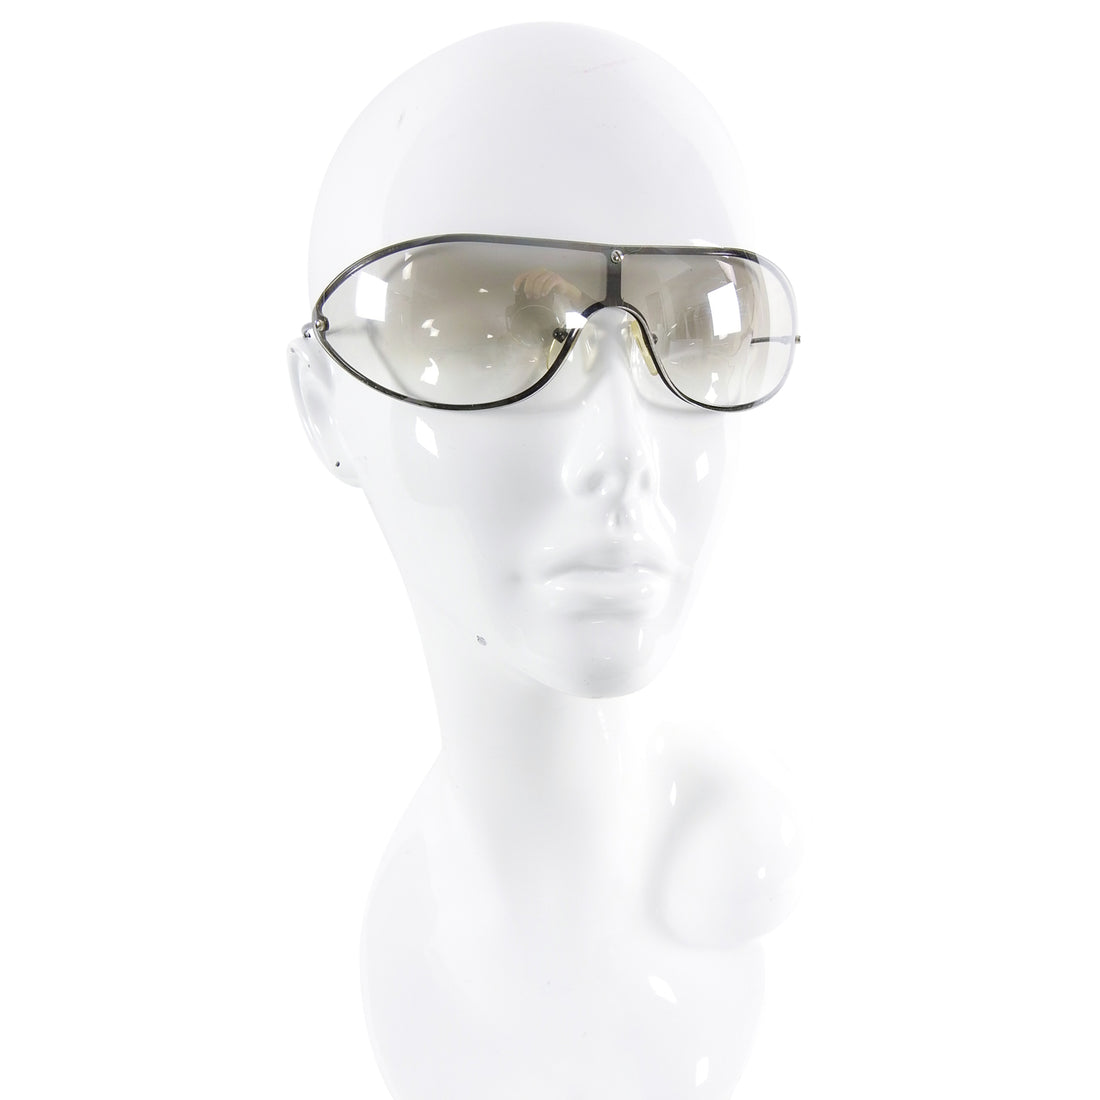 Gucci Vintage 2001 Tom Ford Kate Moss Clear Runway Sunglasses